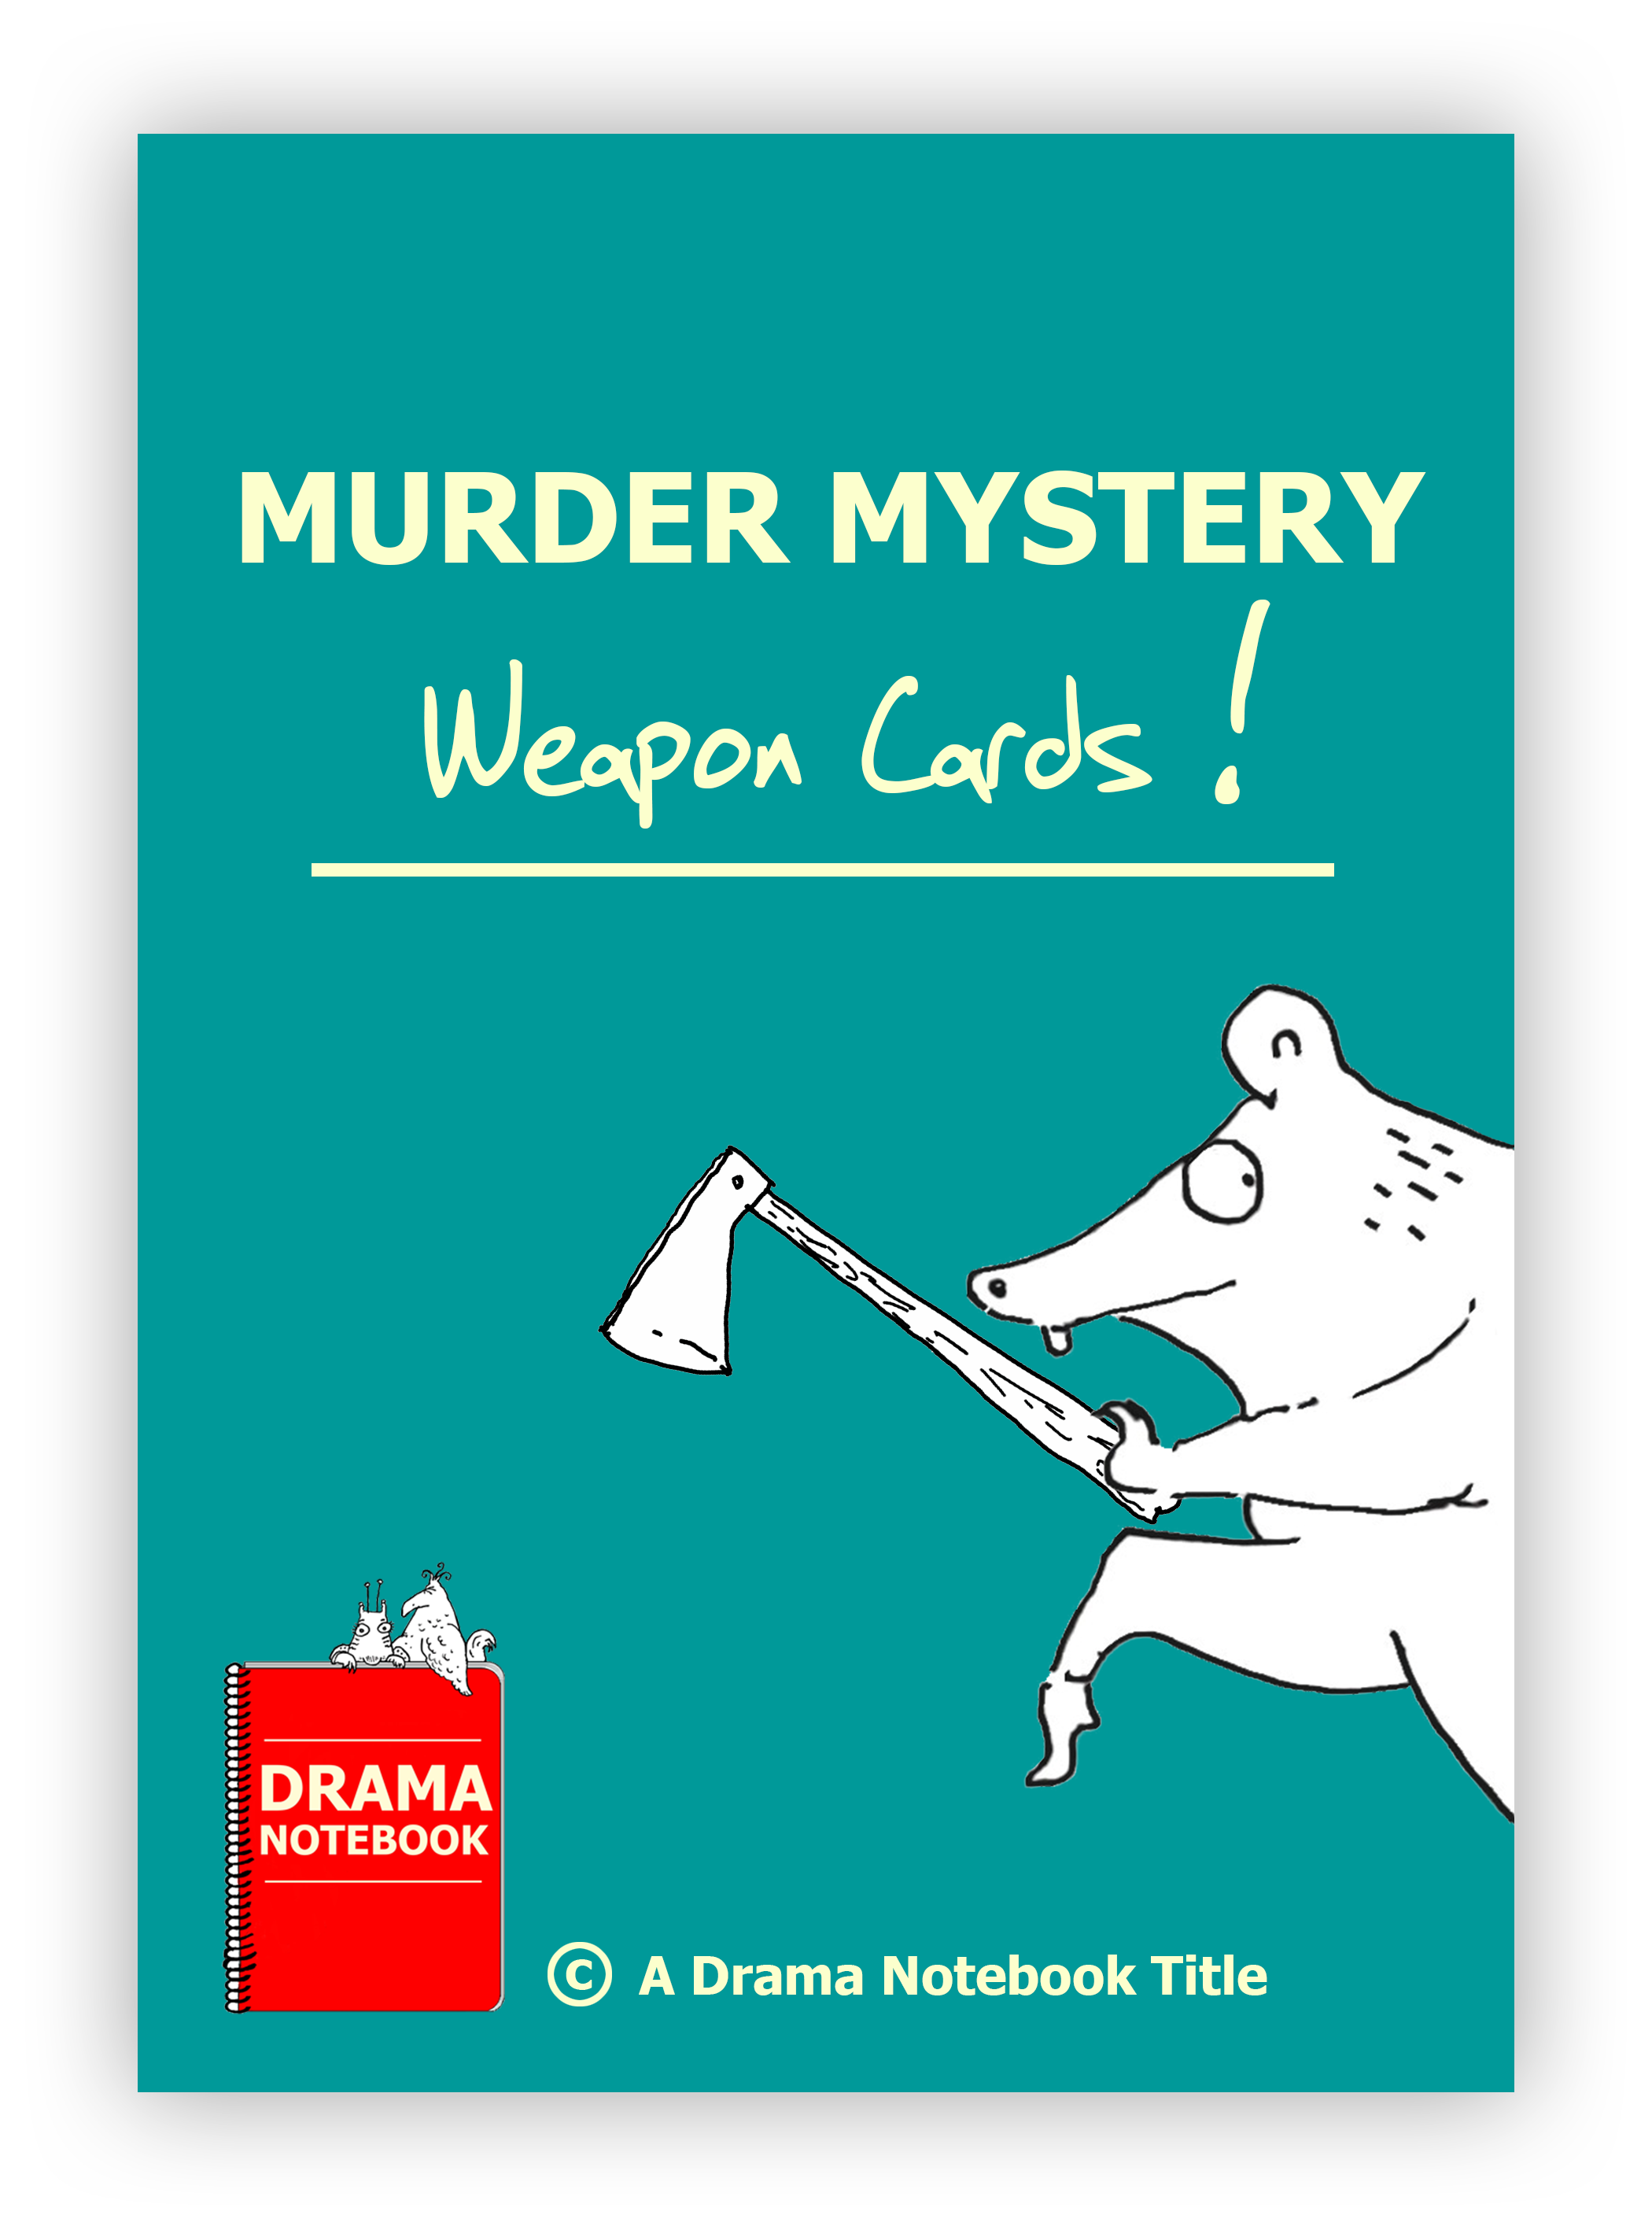 Murder Mystery Weapon Cards